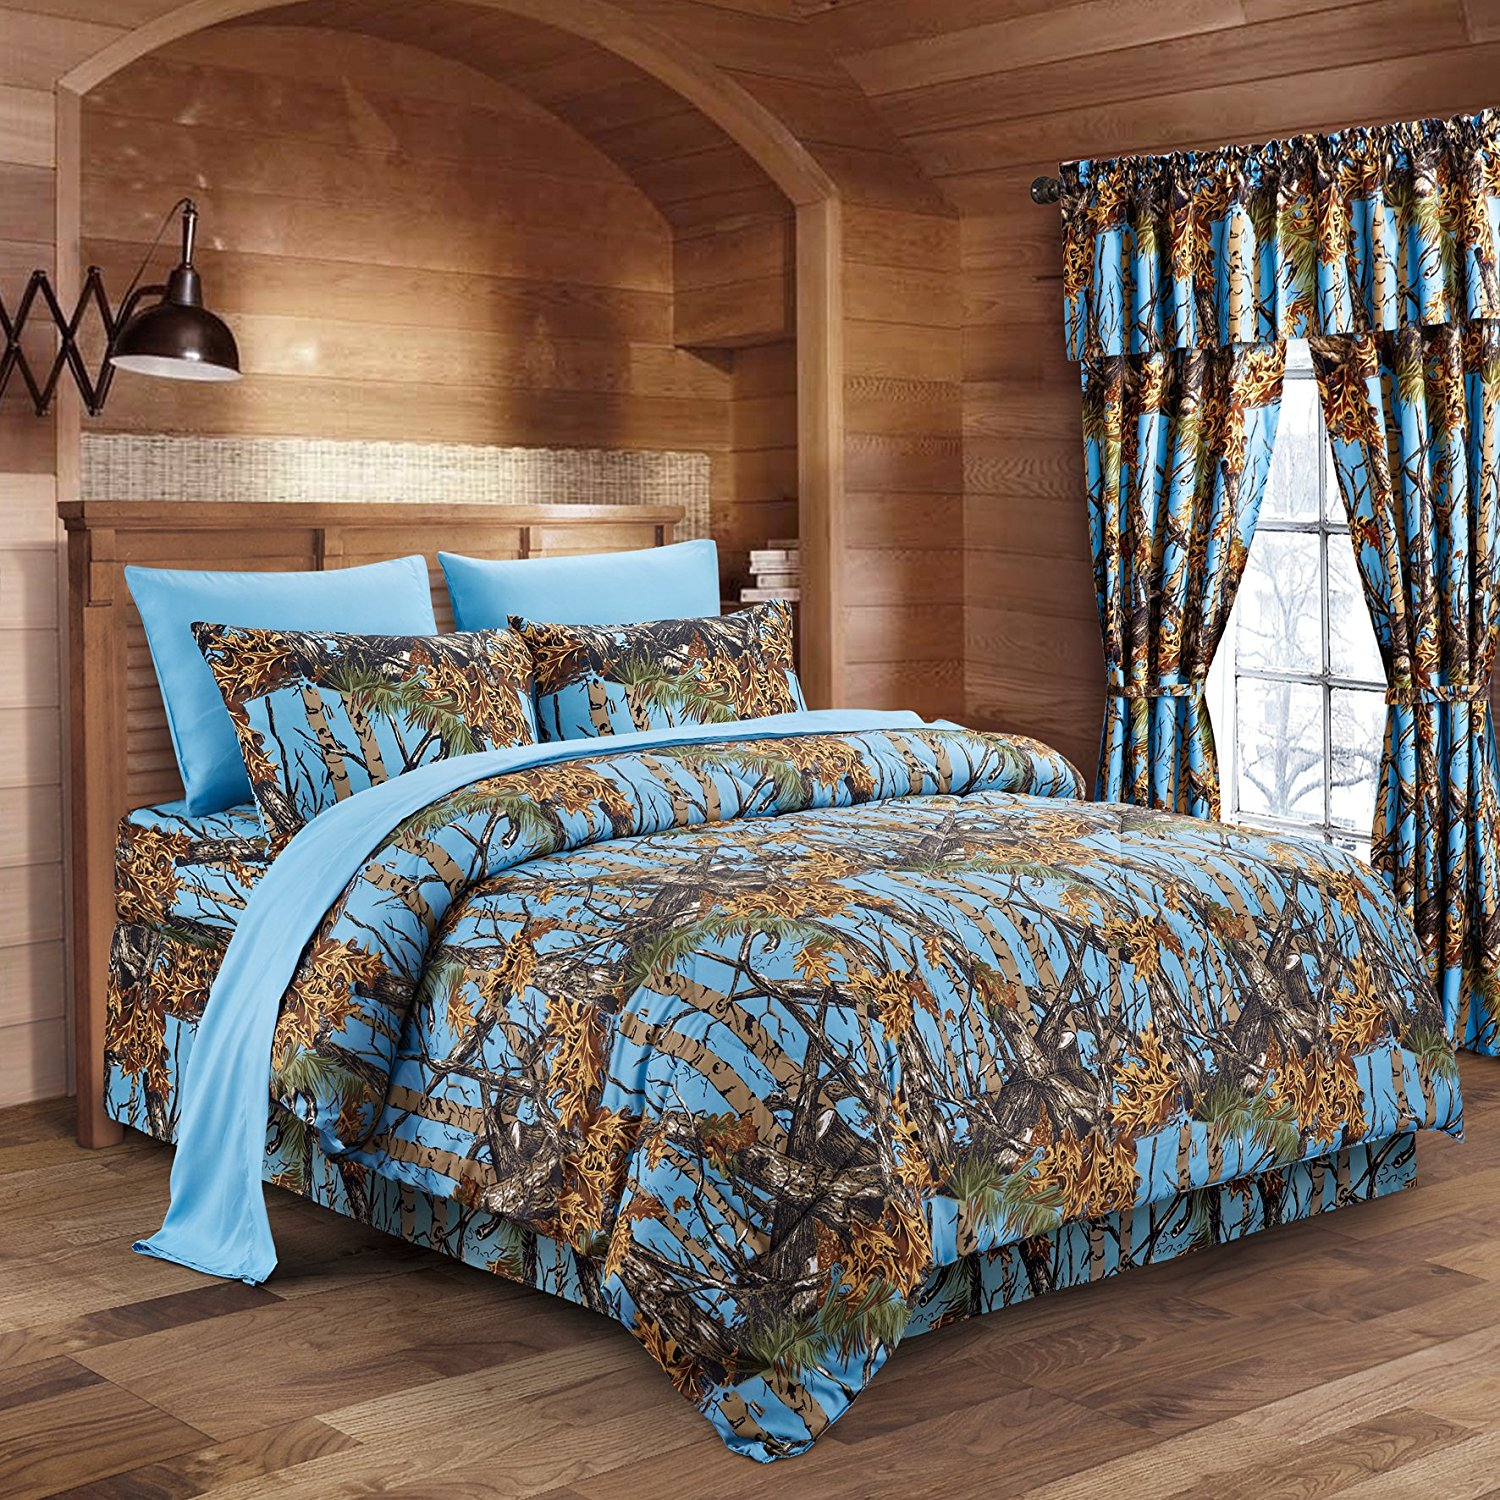 Luxury Comforter Sets | Luxury King Comforter Sets | Blush Comforter